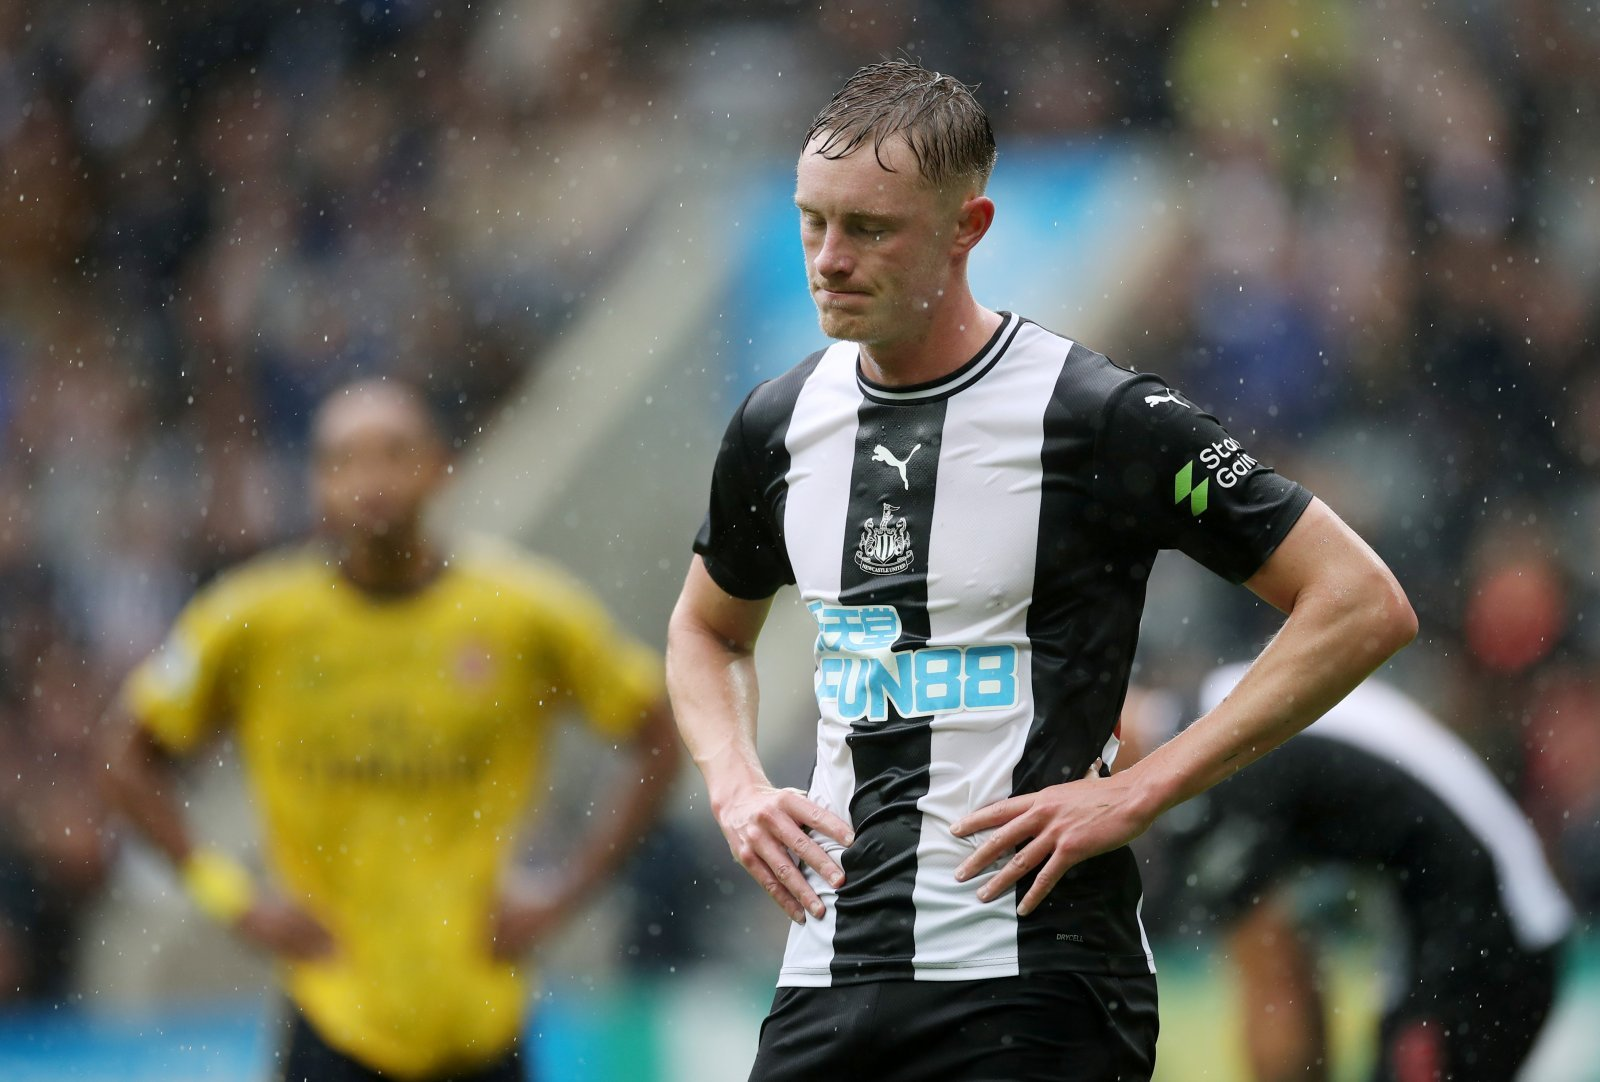 Newcastle United: Sean Longstaff to be offered new deal